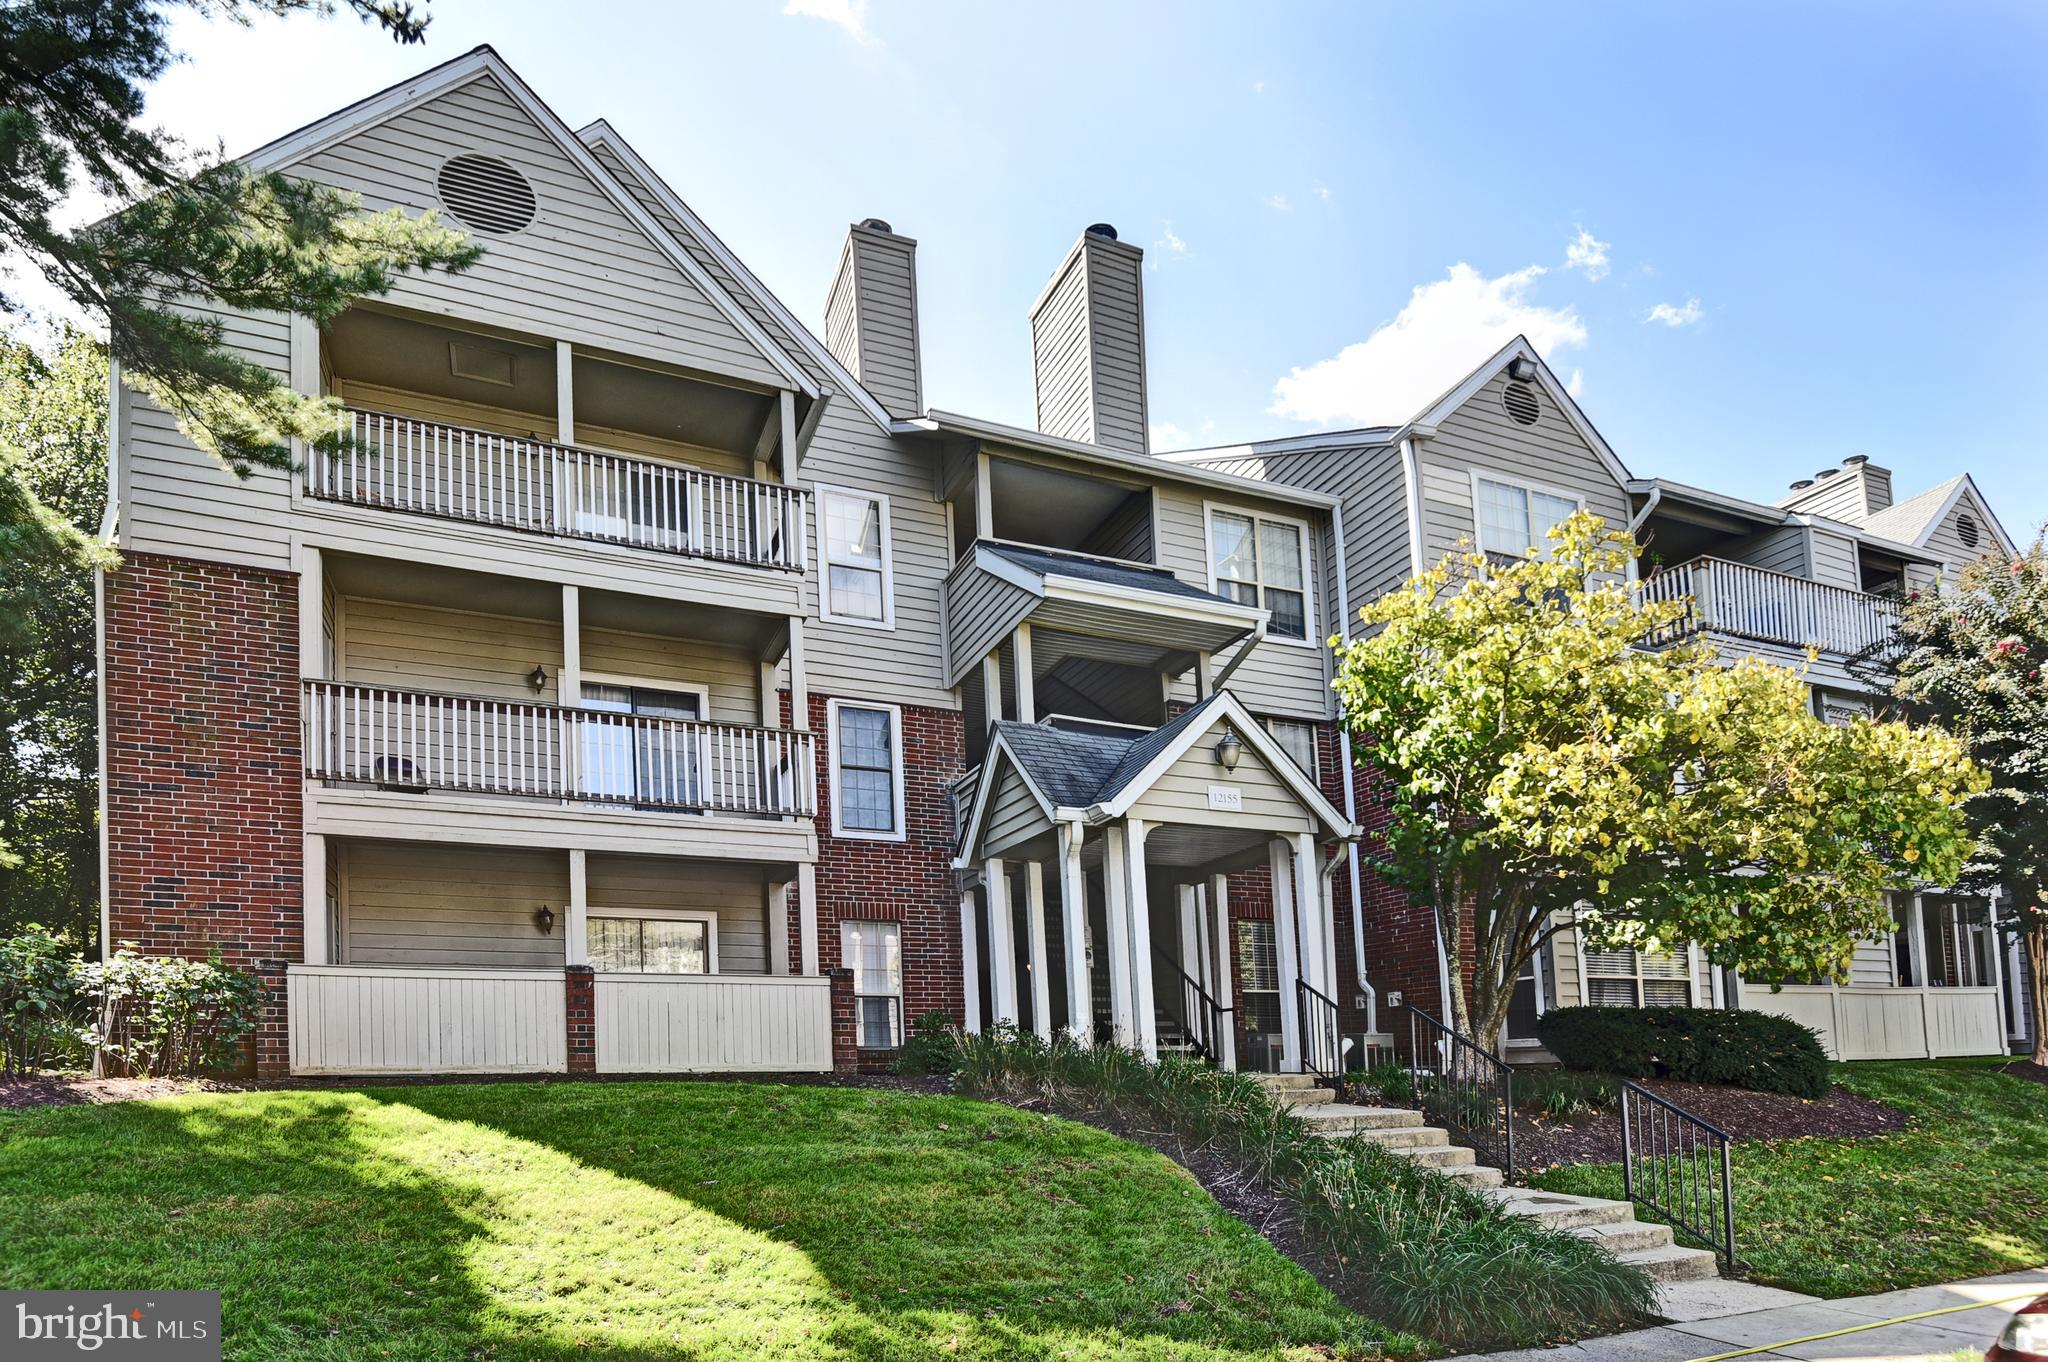 Top floor renovated Condo with a large private Balcony overlooking mature trees!  This open floorpla